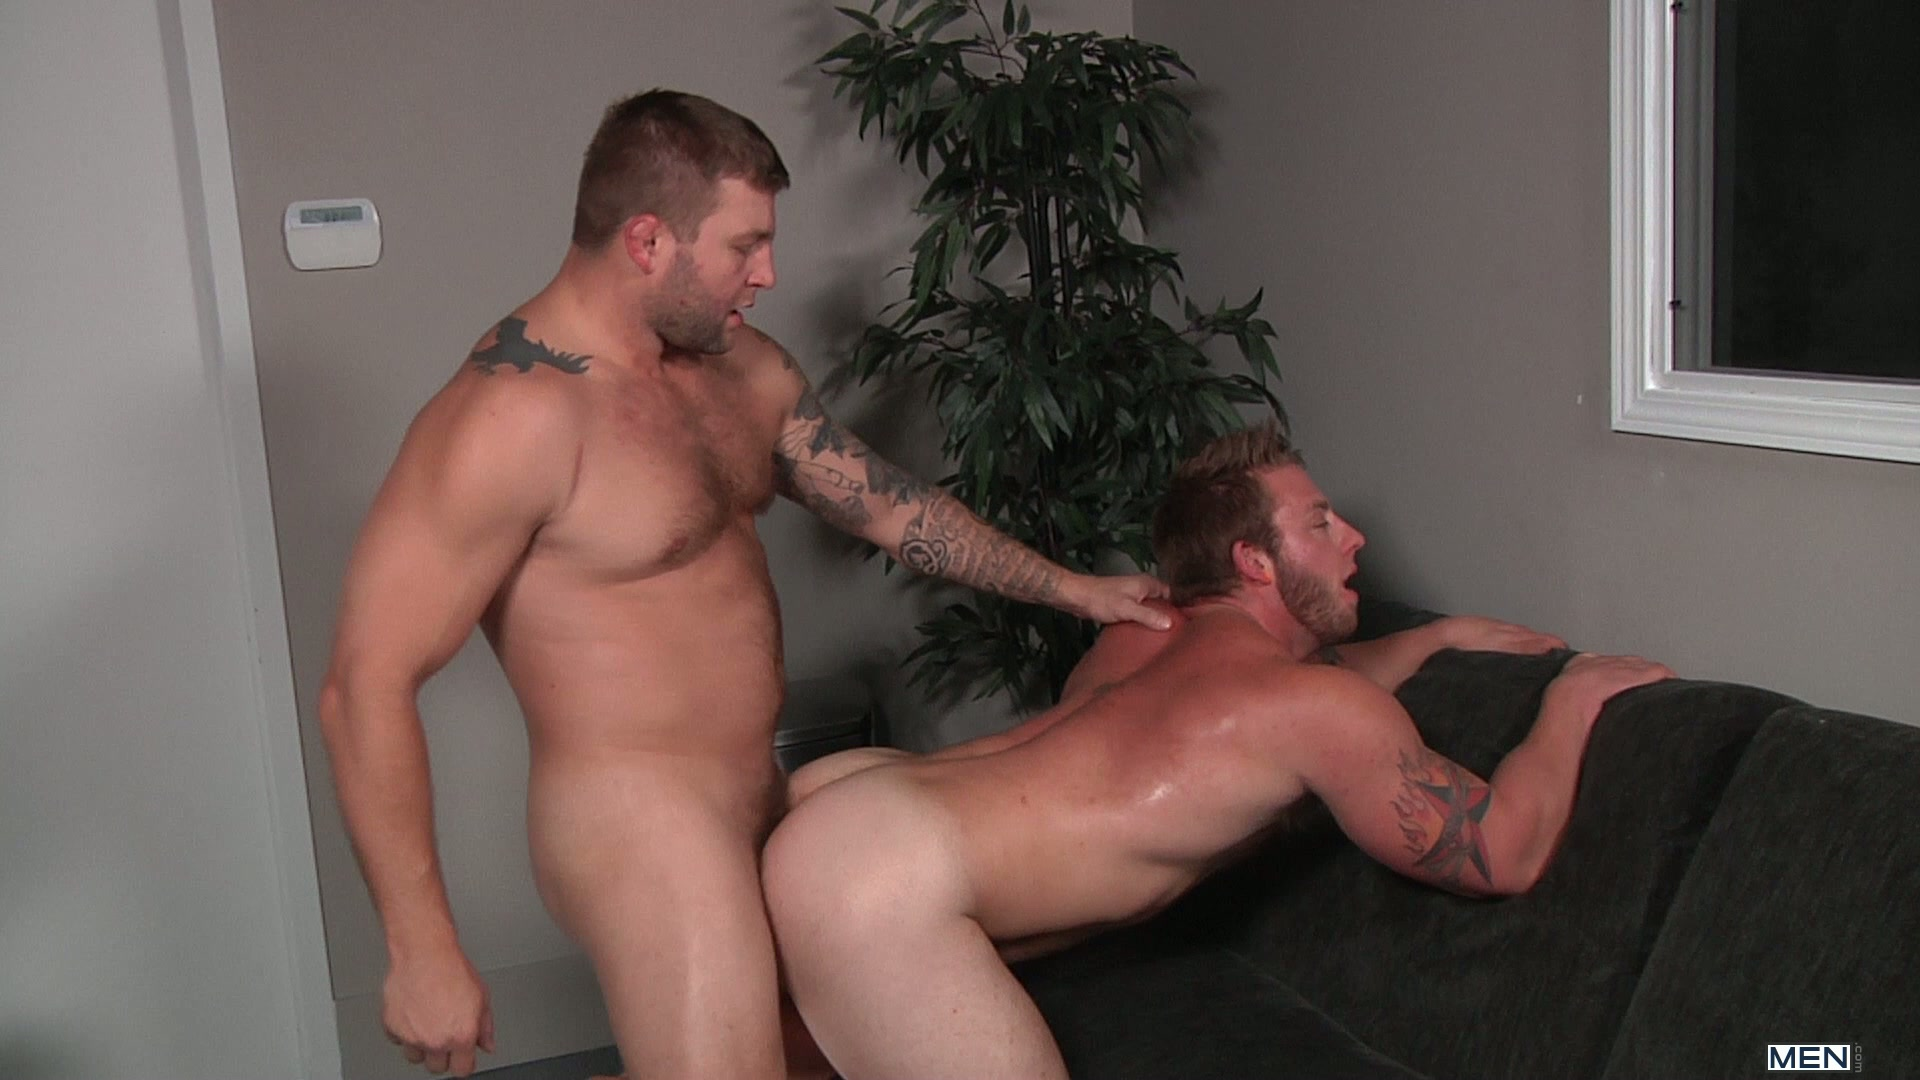 Watch Scrum Part 2 – Dmh – Drill My Hole – Colby Jansen And Aaron Bruiser (MEN.COM) Gay Porn Tube Videos Gifs And Free XXX HD Sex Movies Photos Online